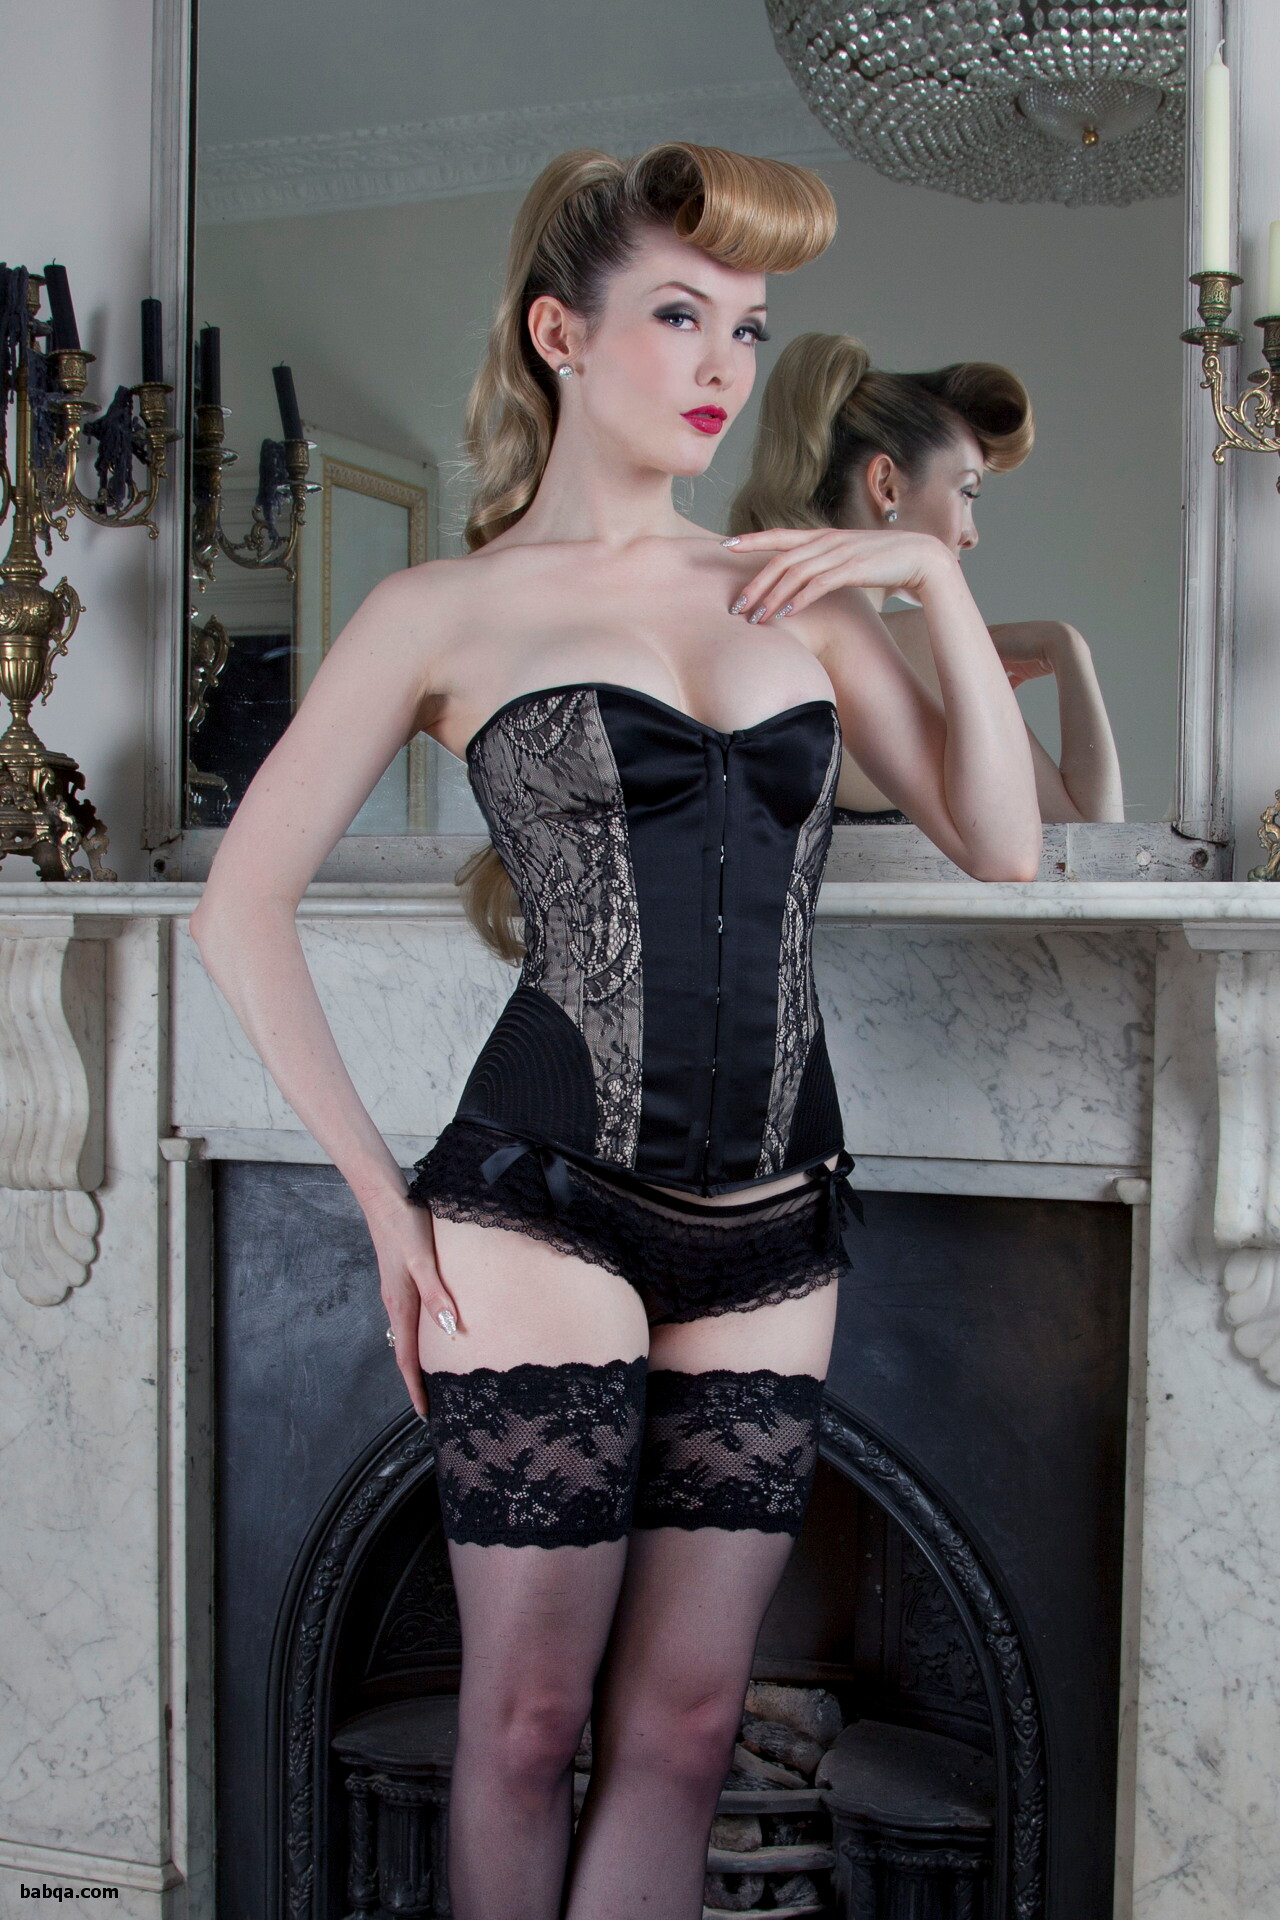 older women stocking pics and wife in slutty lingerie